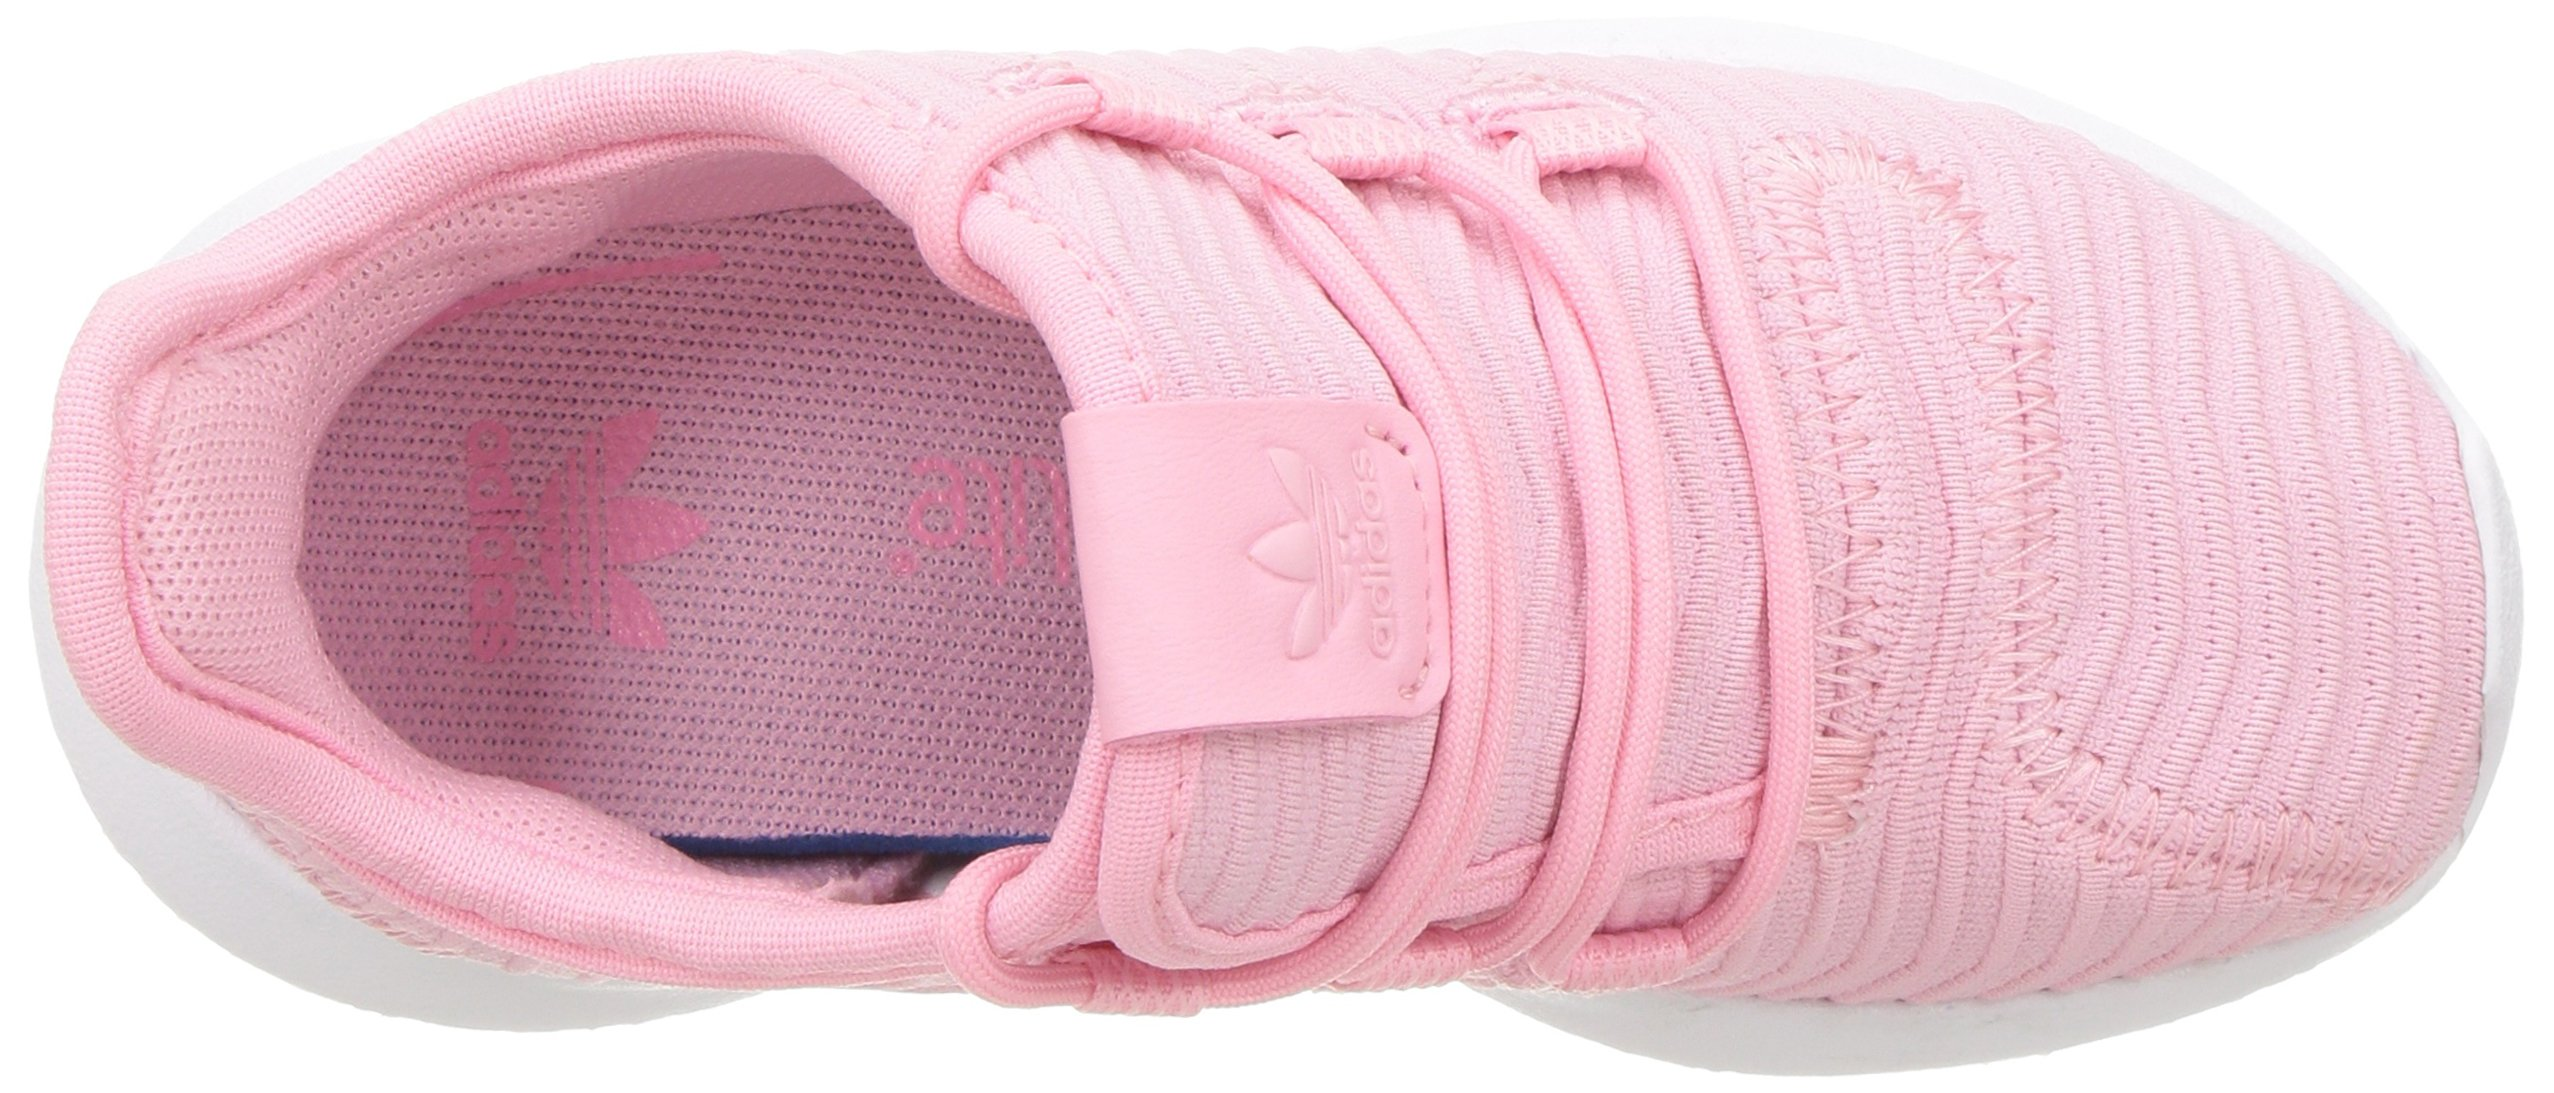 adidas Originals Baby Tubular Shadow Light Pink/White, 7K M US Toddler by adidas Originals (Image #7)